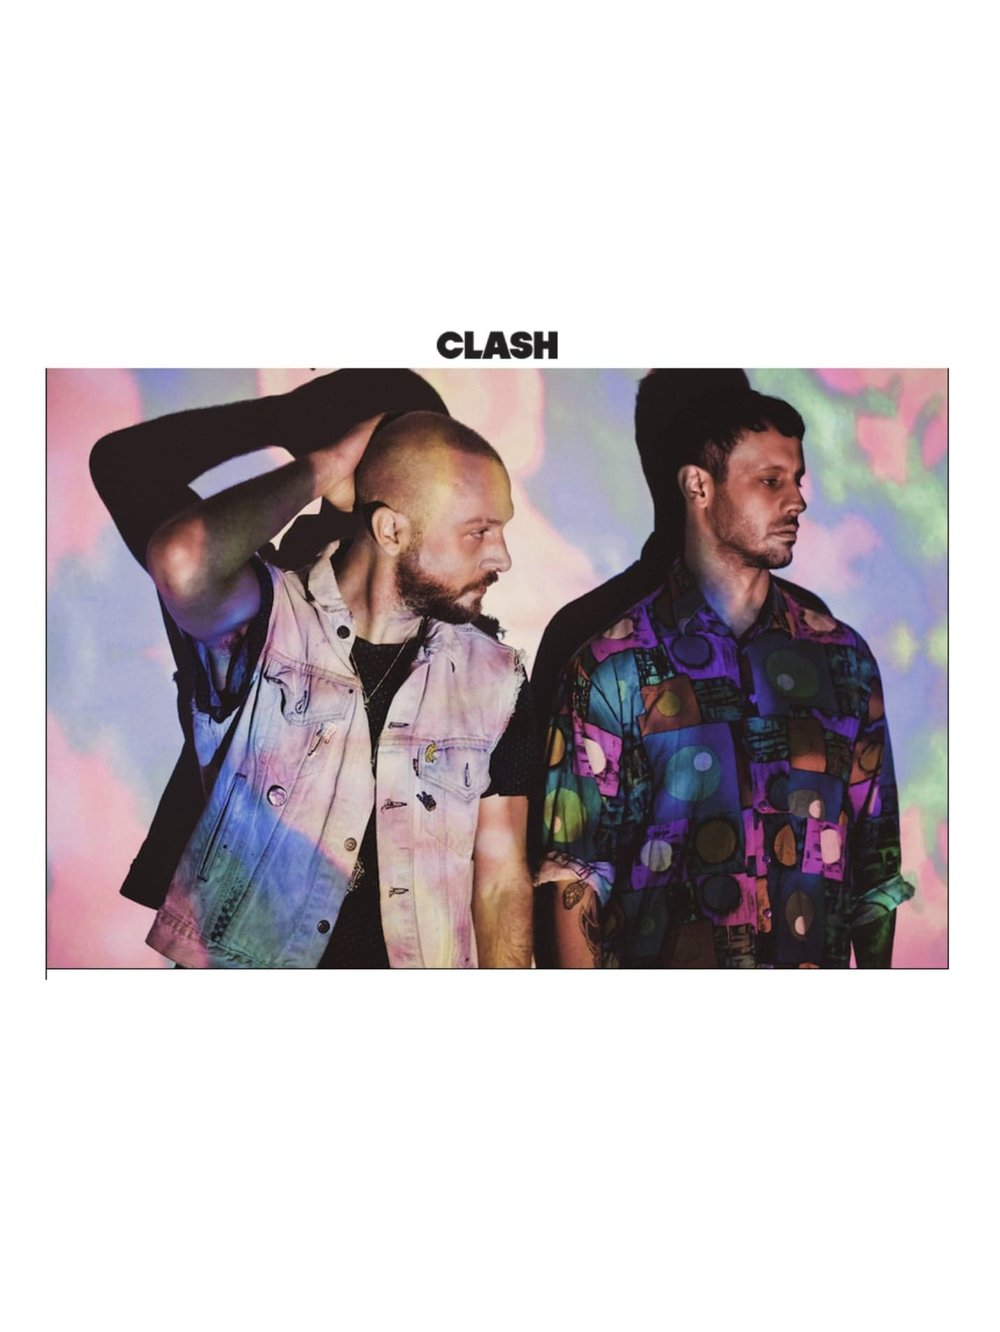 Clash Magazine premiere awesome new Infinity Ink video - 'Rushing